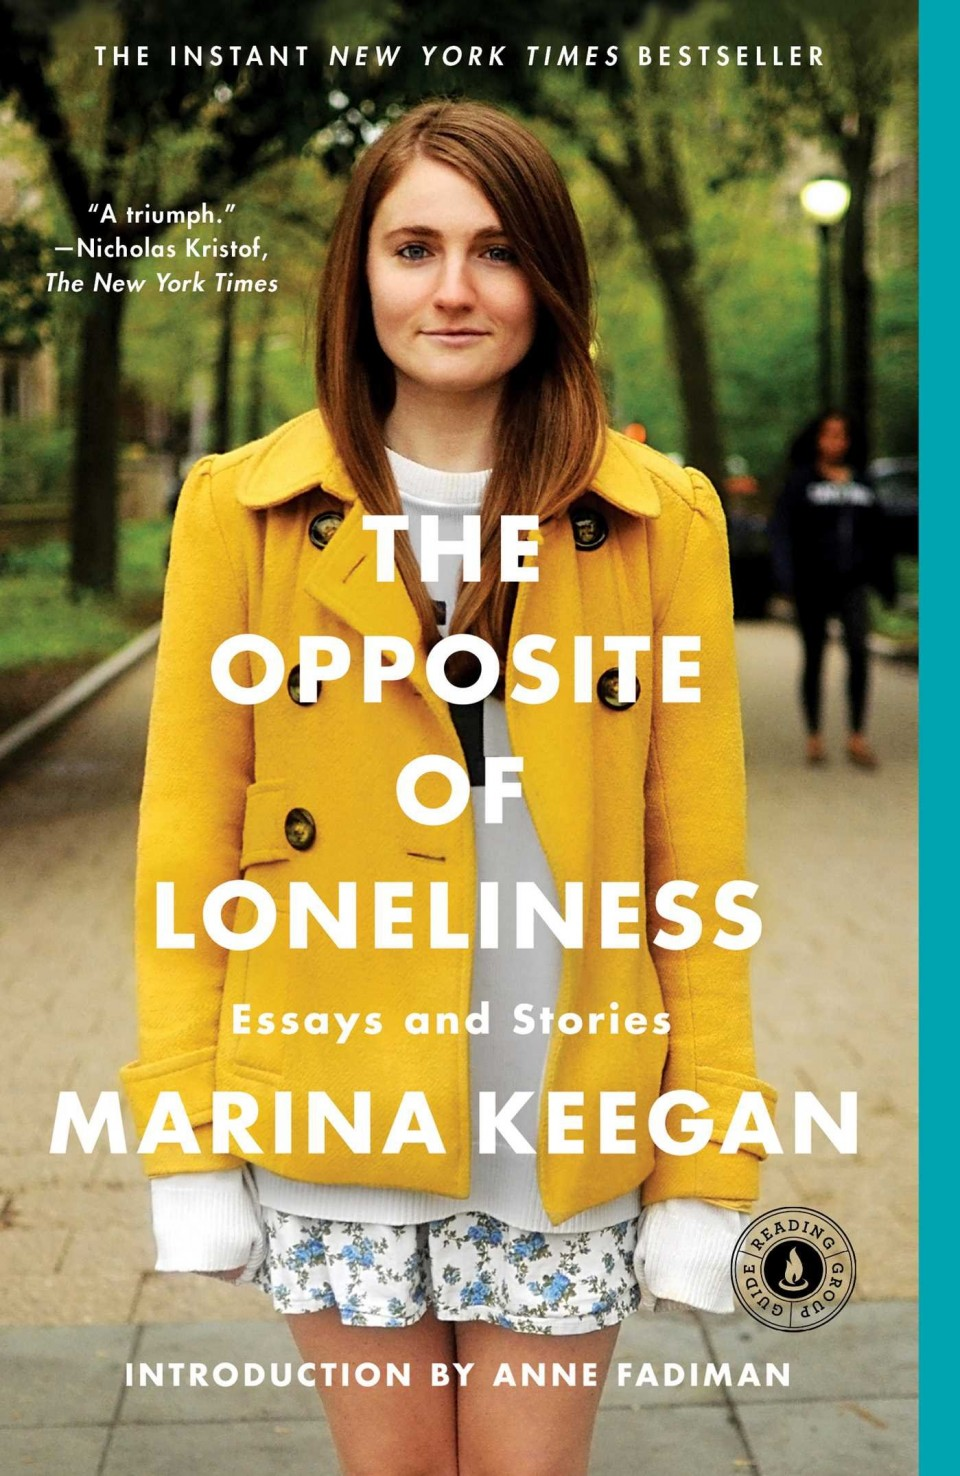 002 81xm Clxskl The Opposite Of Loneliness Essay Fascinating Book Essays And Stories 960